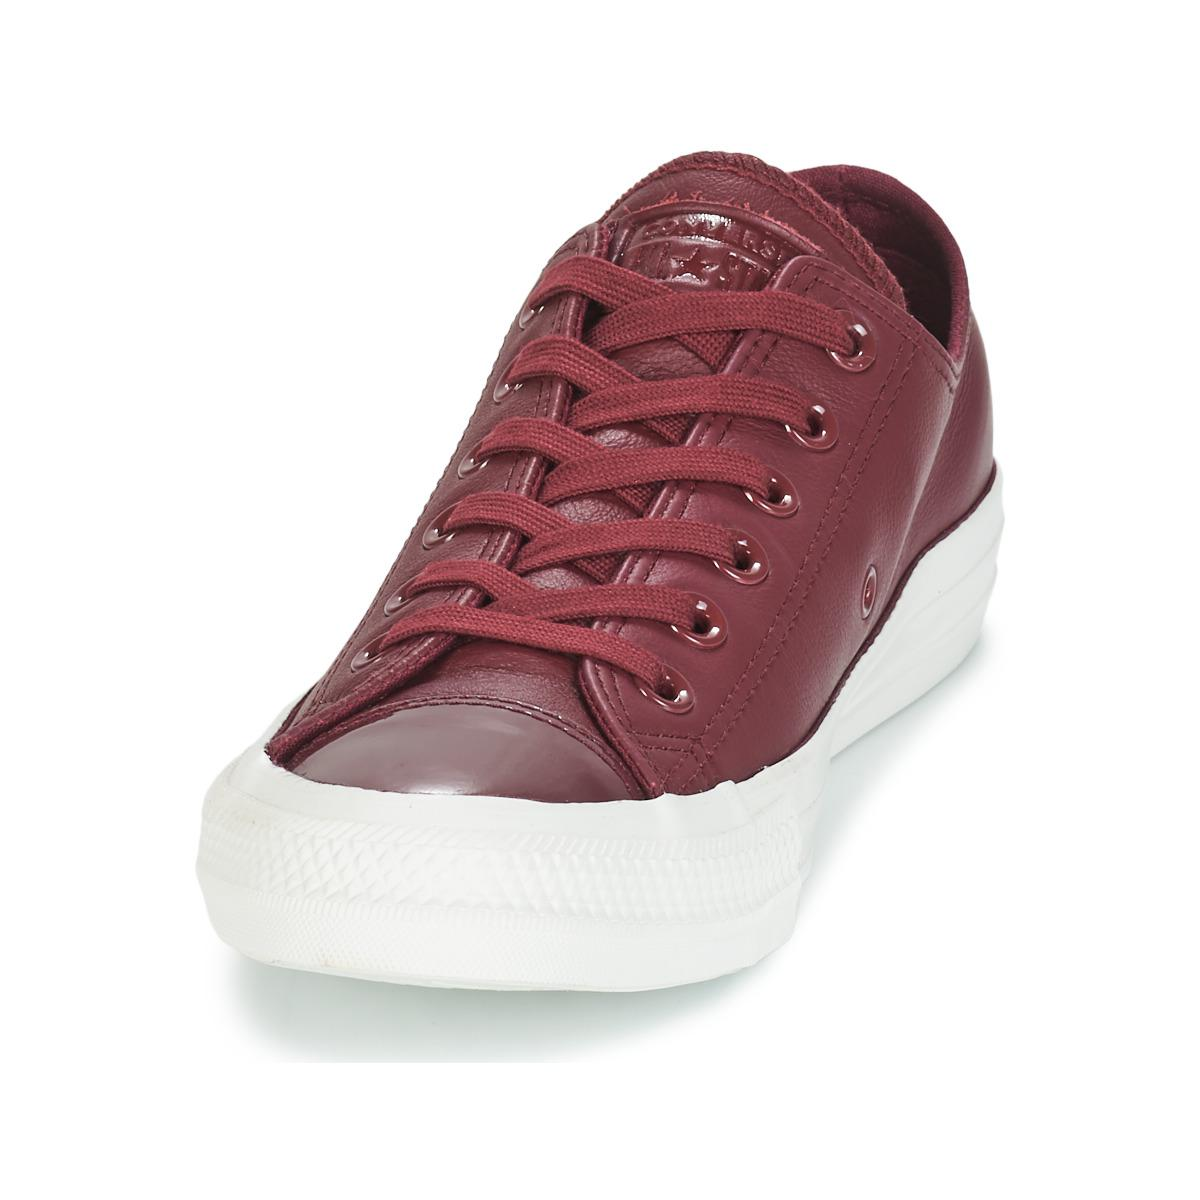 0838d4357fb Converse - Red Chuck Taylor All Star Leather Ox Shoes (trainers) - Lyst.  View fullscreen